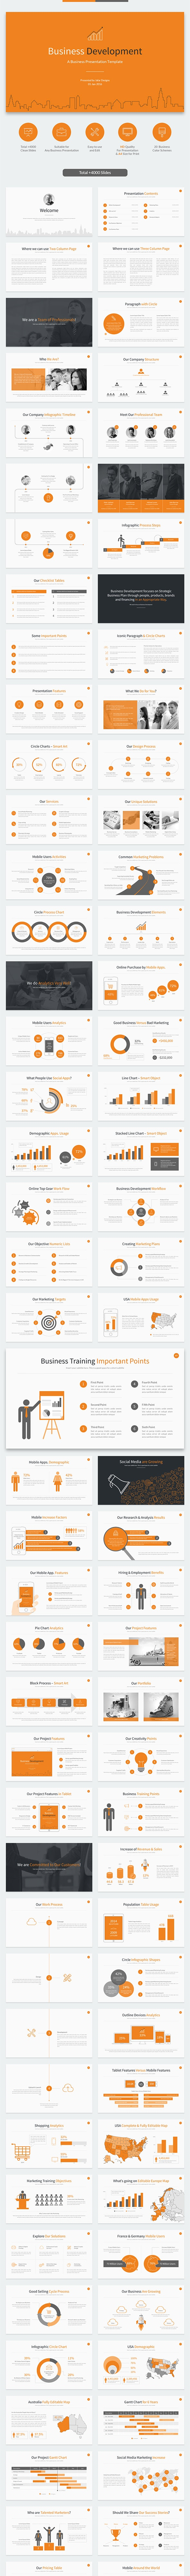 Business Development Google Slides Template - Google Slides Presentation Templates